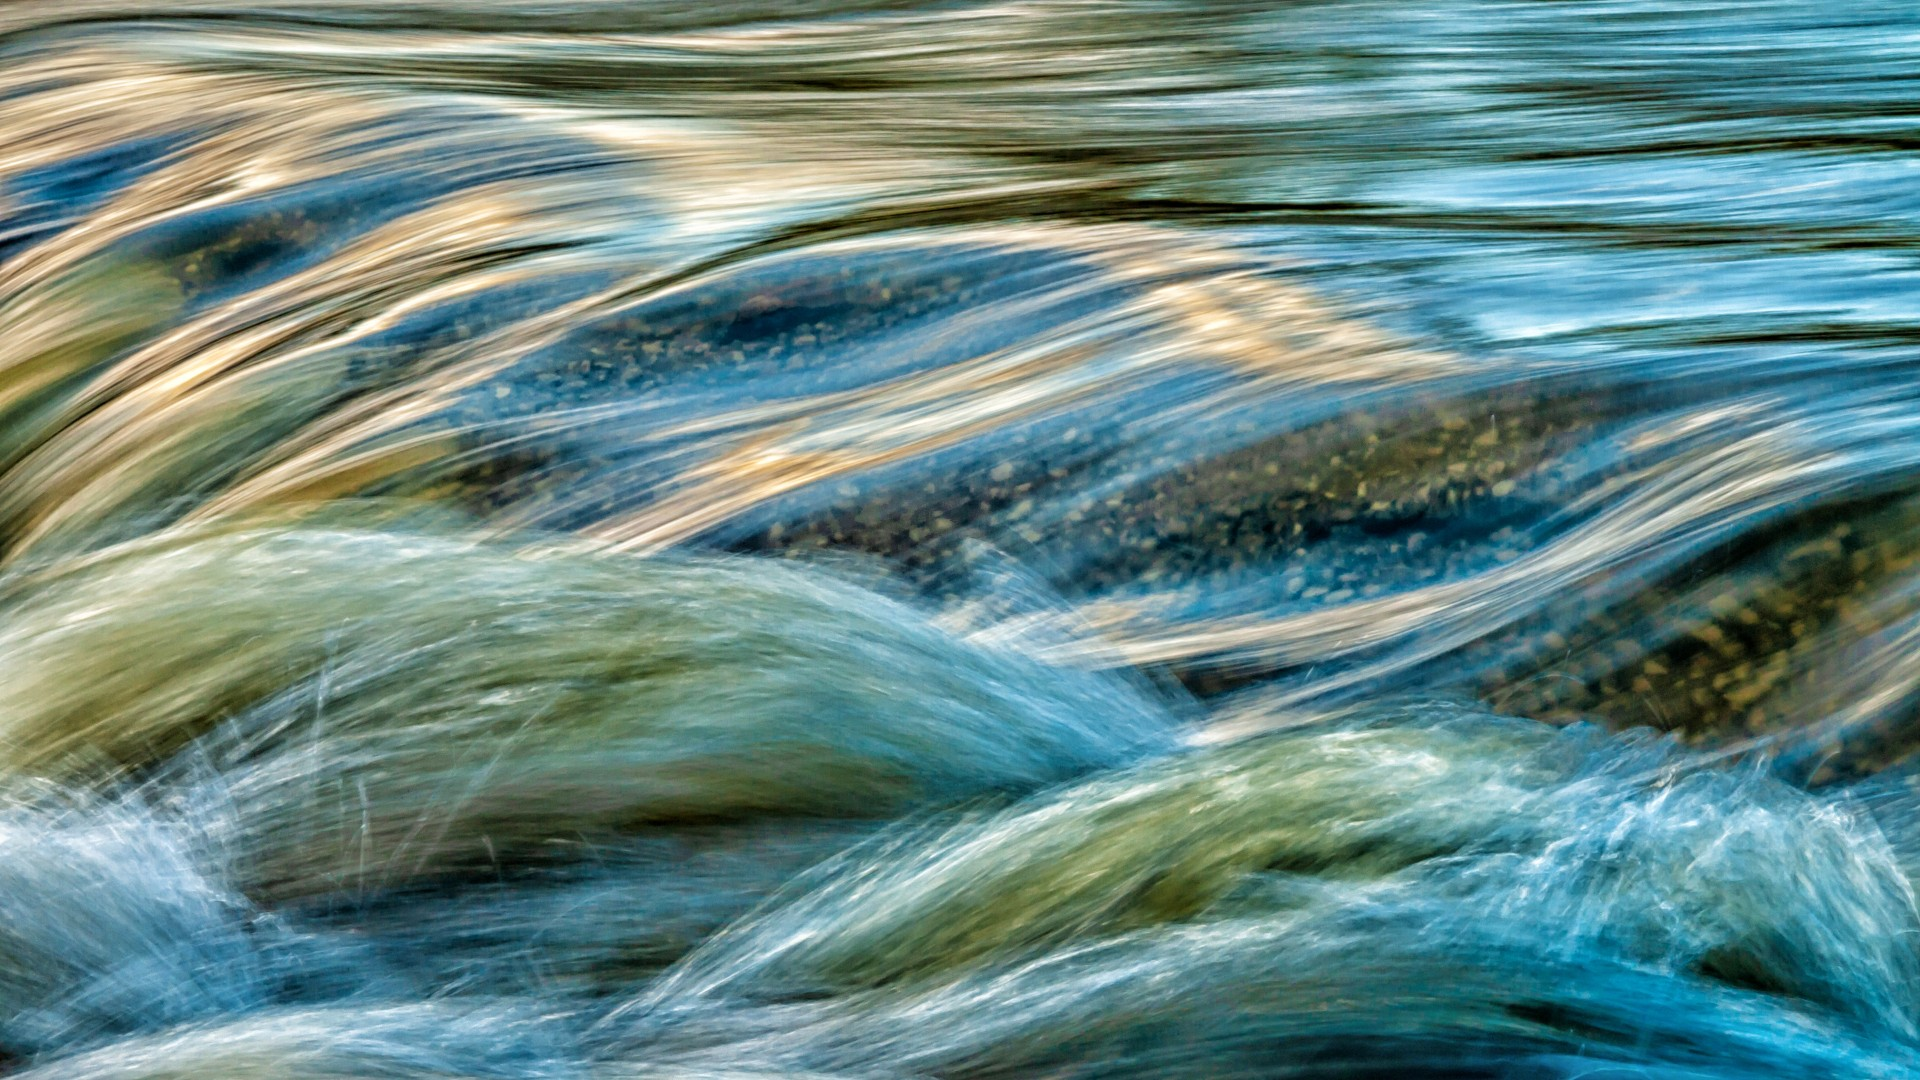 A river is seen in a file photo. (iStock/Getty Images Plus)